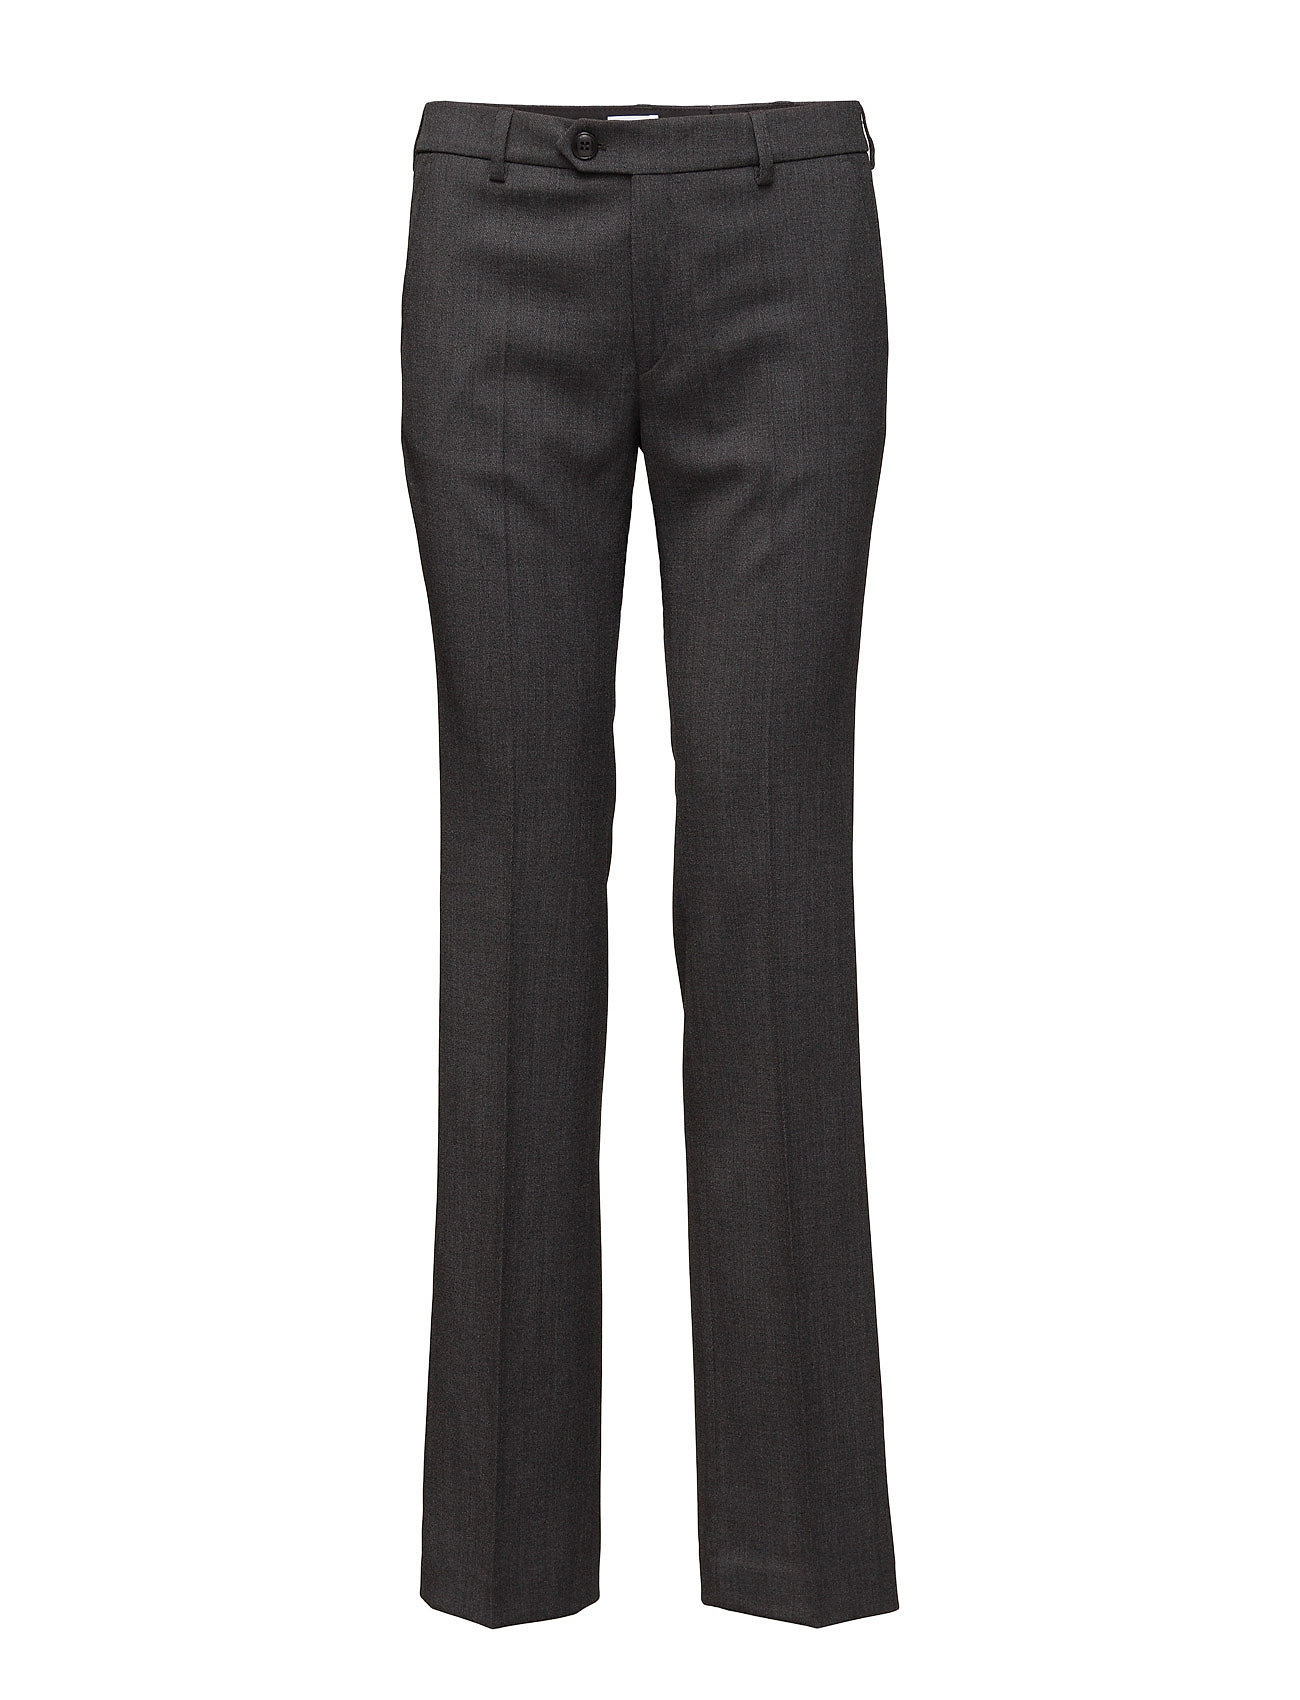 Filippa K Lily Slacks - GREY MEL.